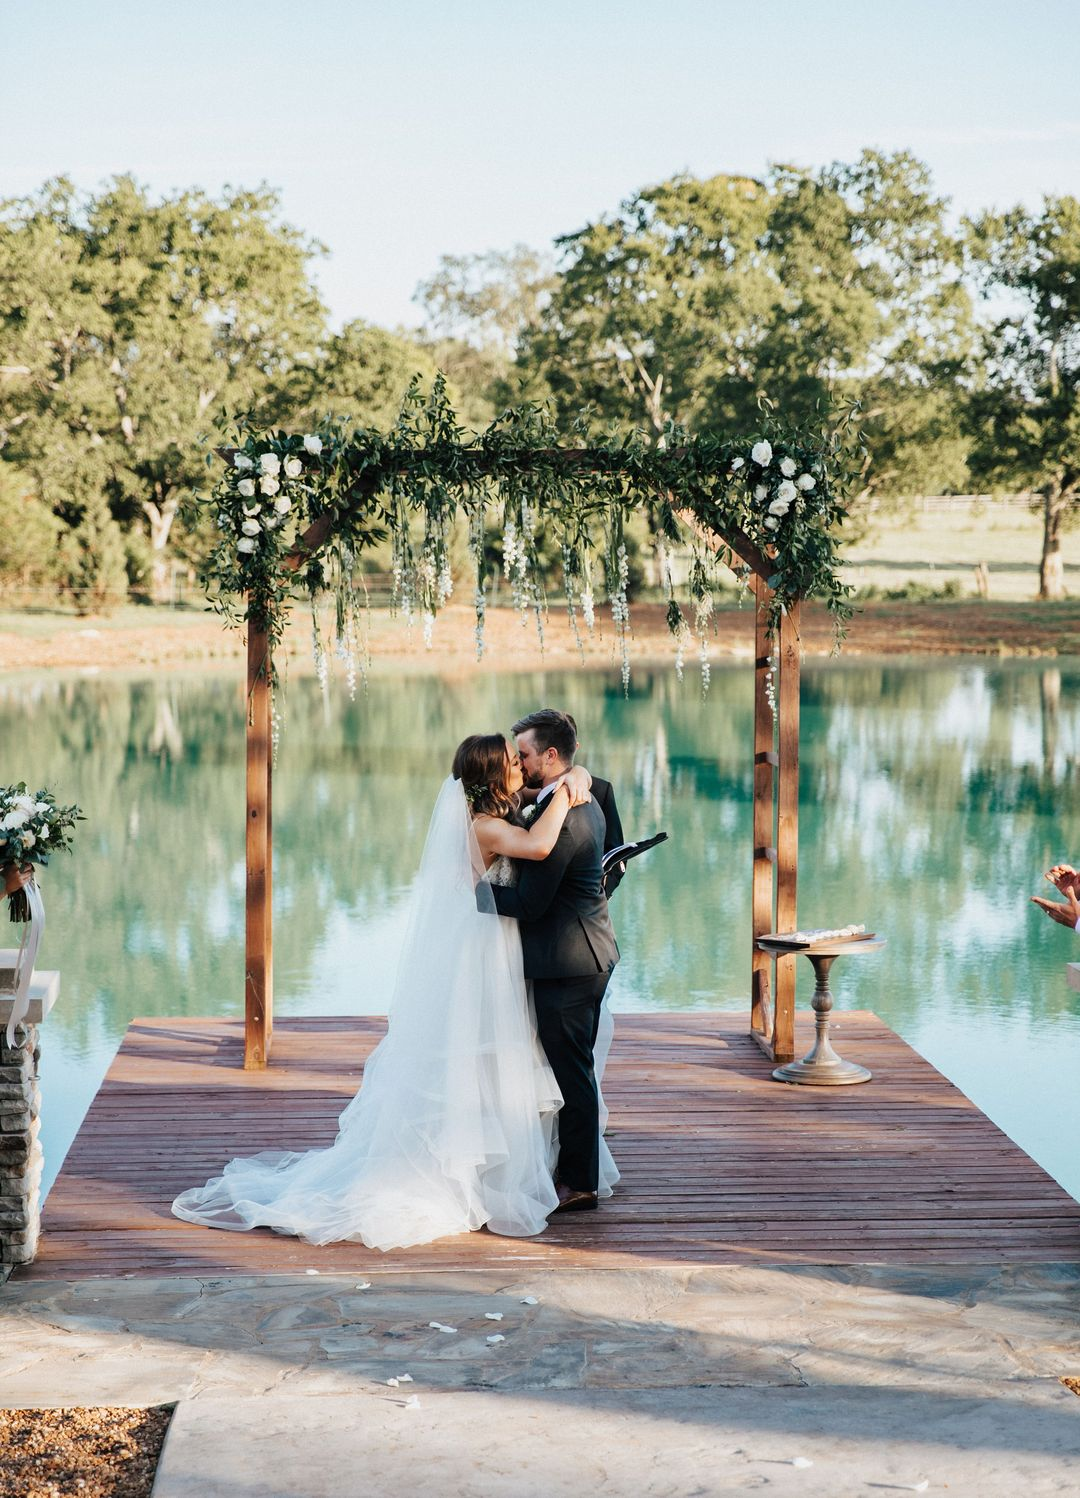 wedding ceremony outdoors, bride and groom kiss